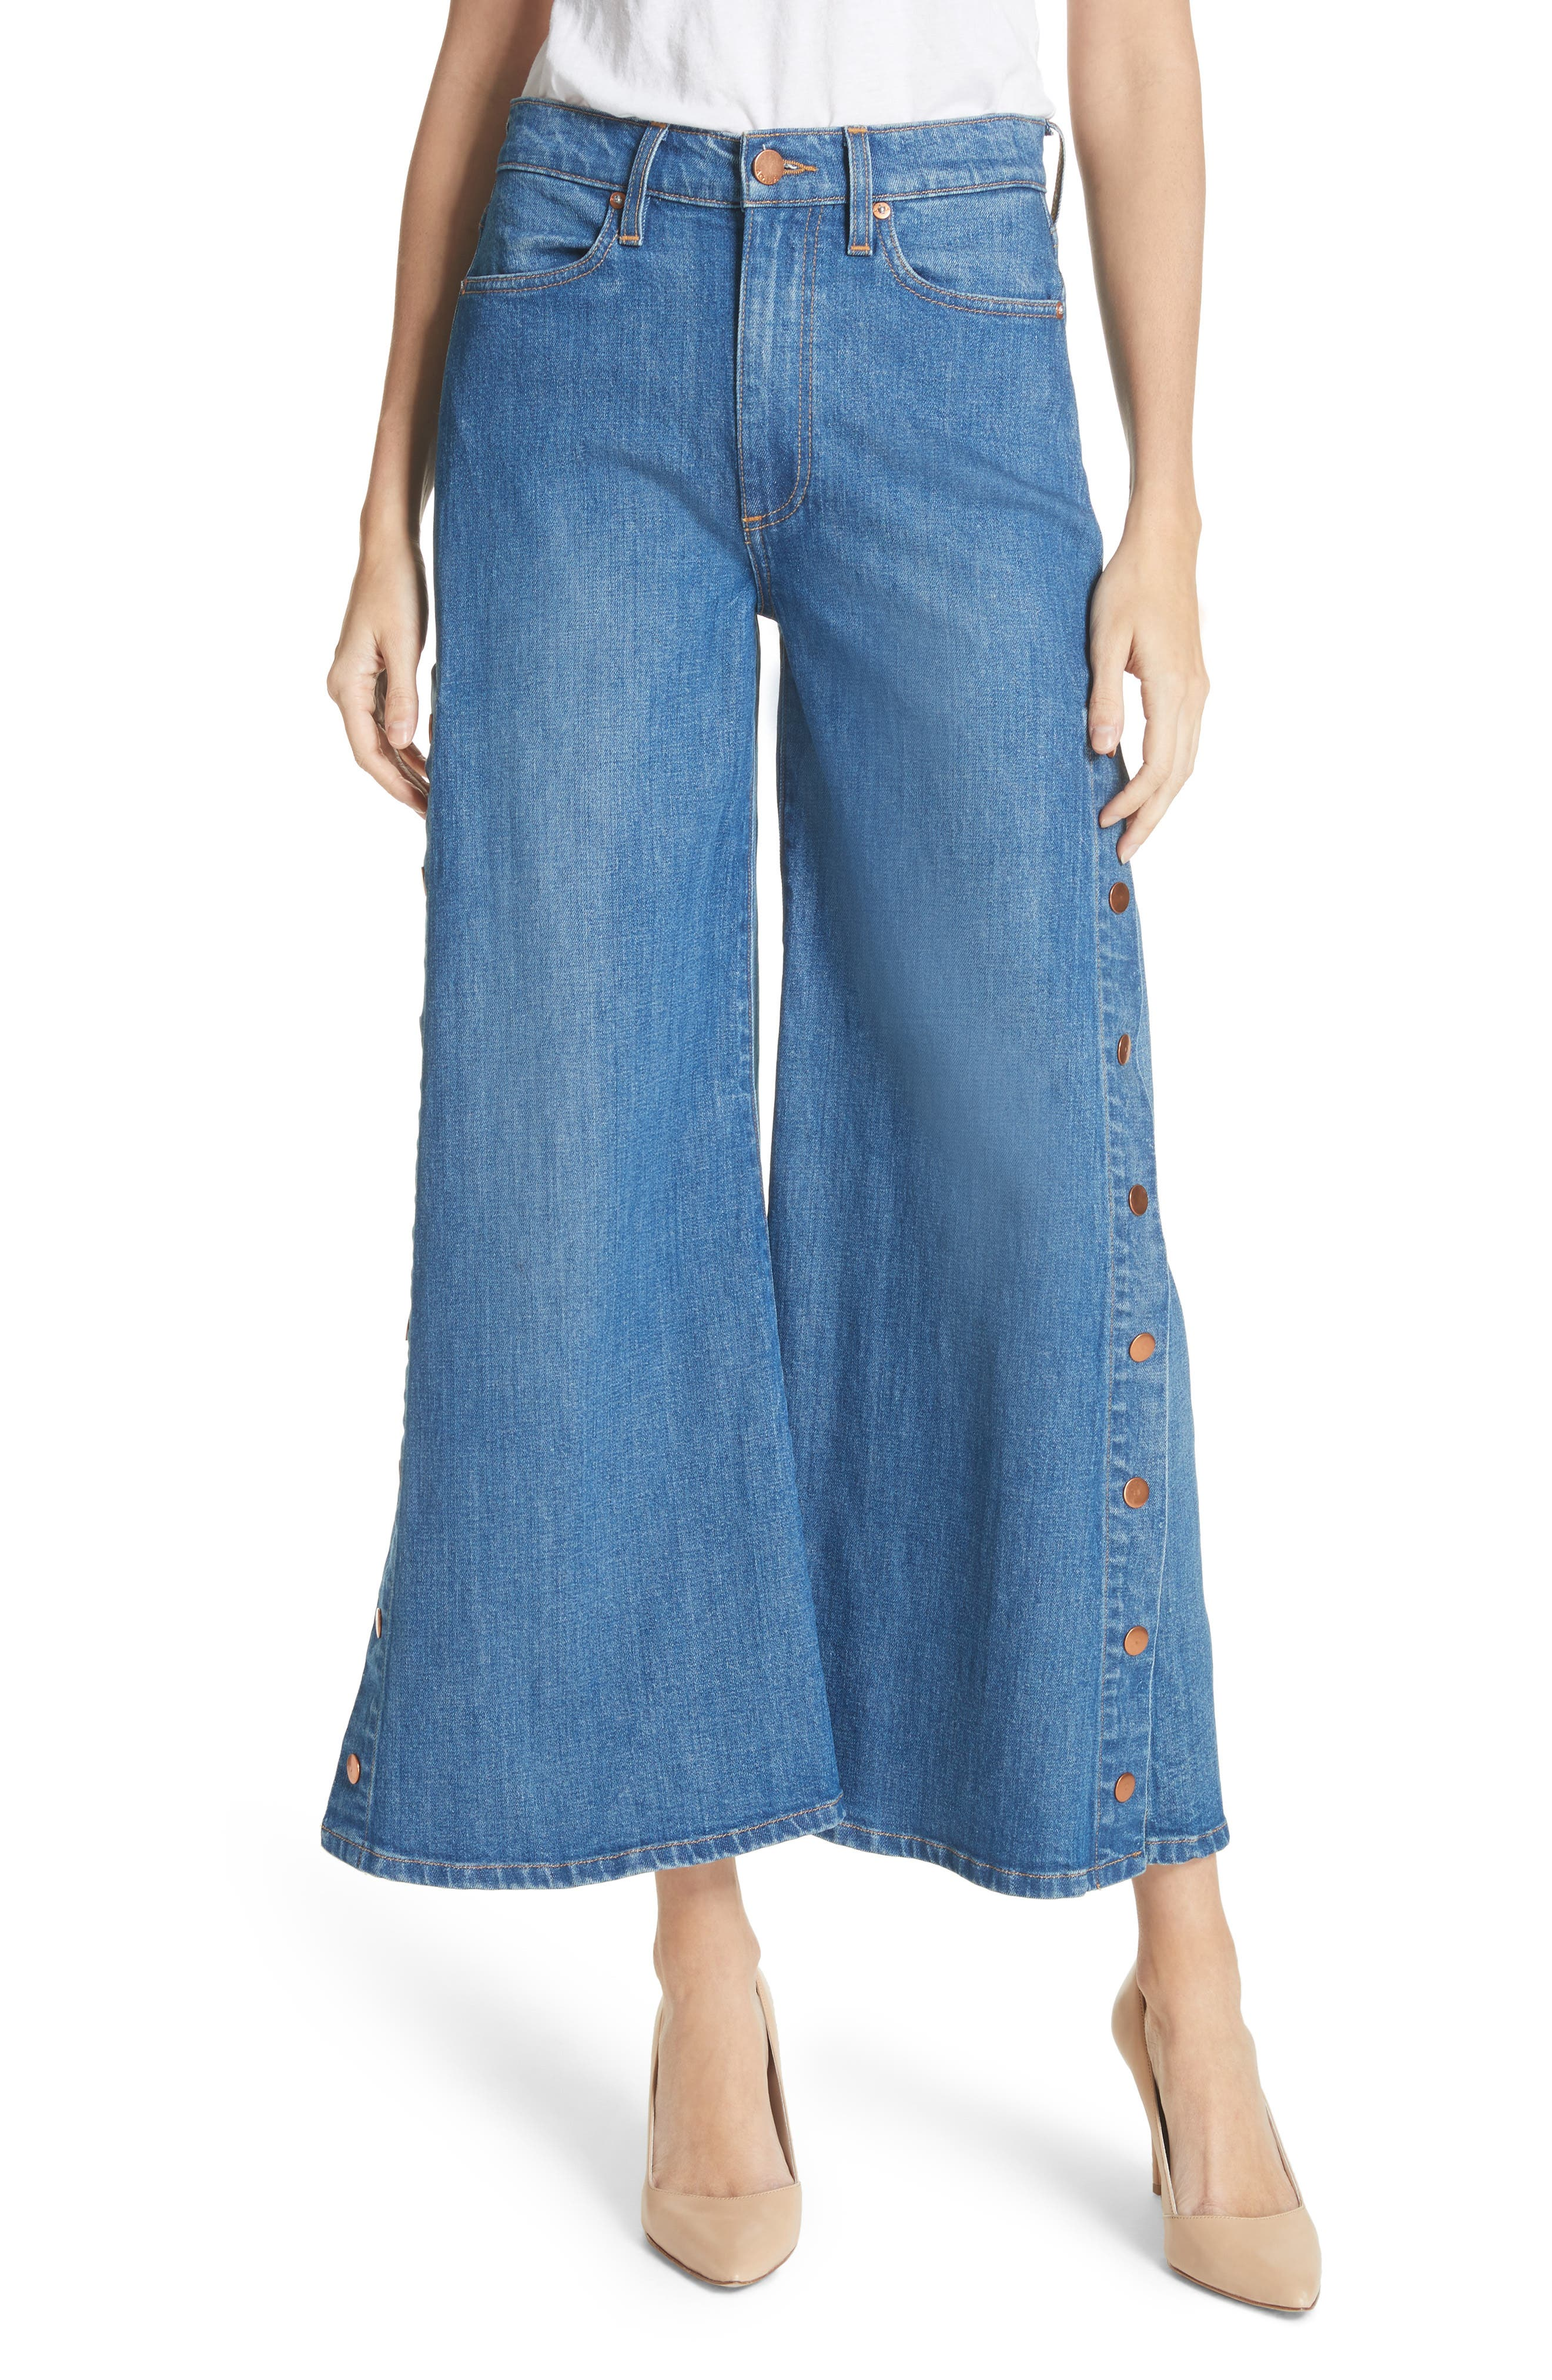 AO.LA Gorgeous Snap Side Crop Flare Jeans,                             Main thumbnail 1, color,                             French Blue